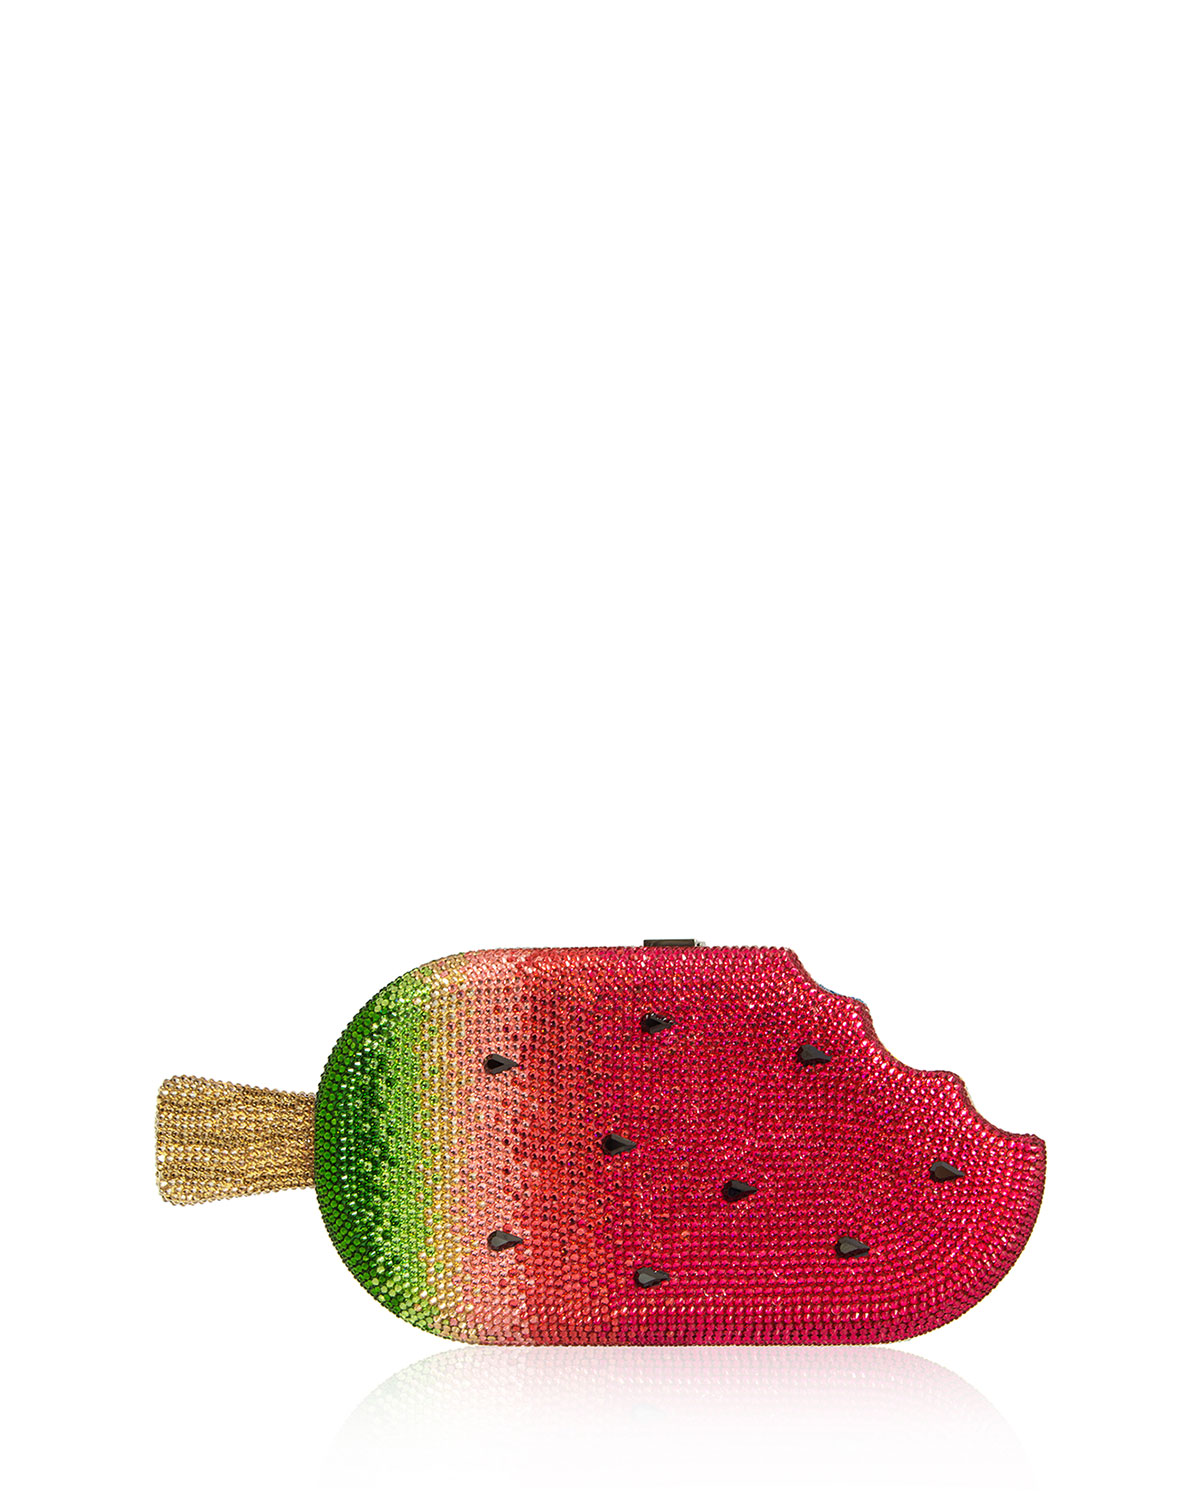 Popsicle Watermelon Clutch Bag